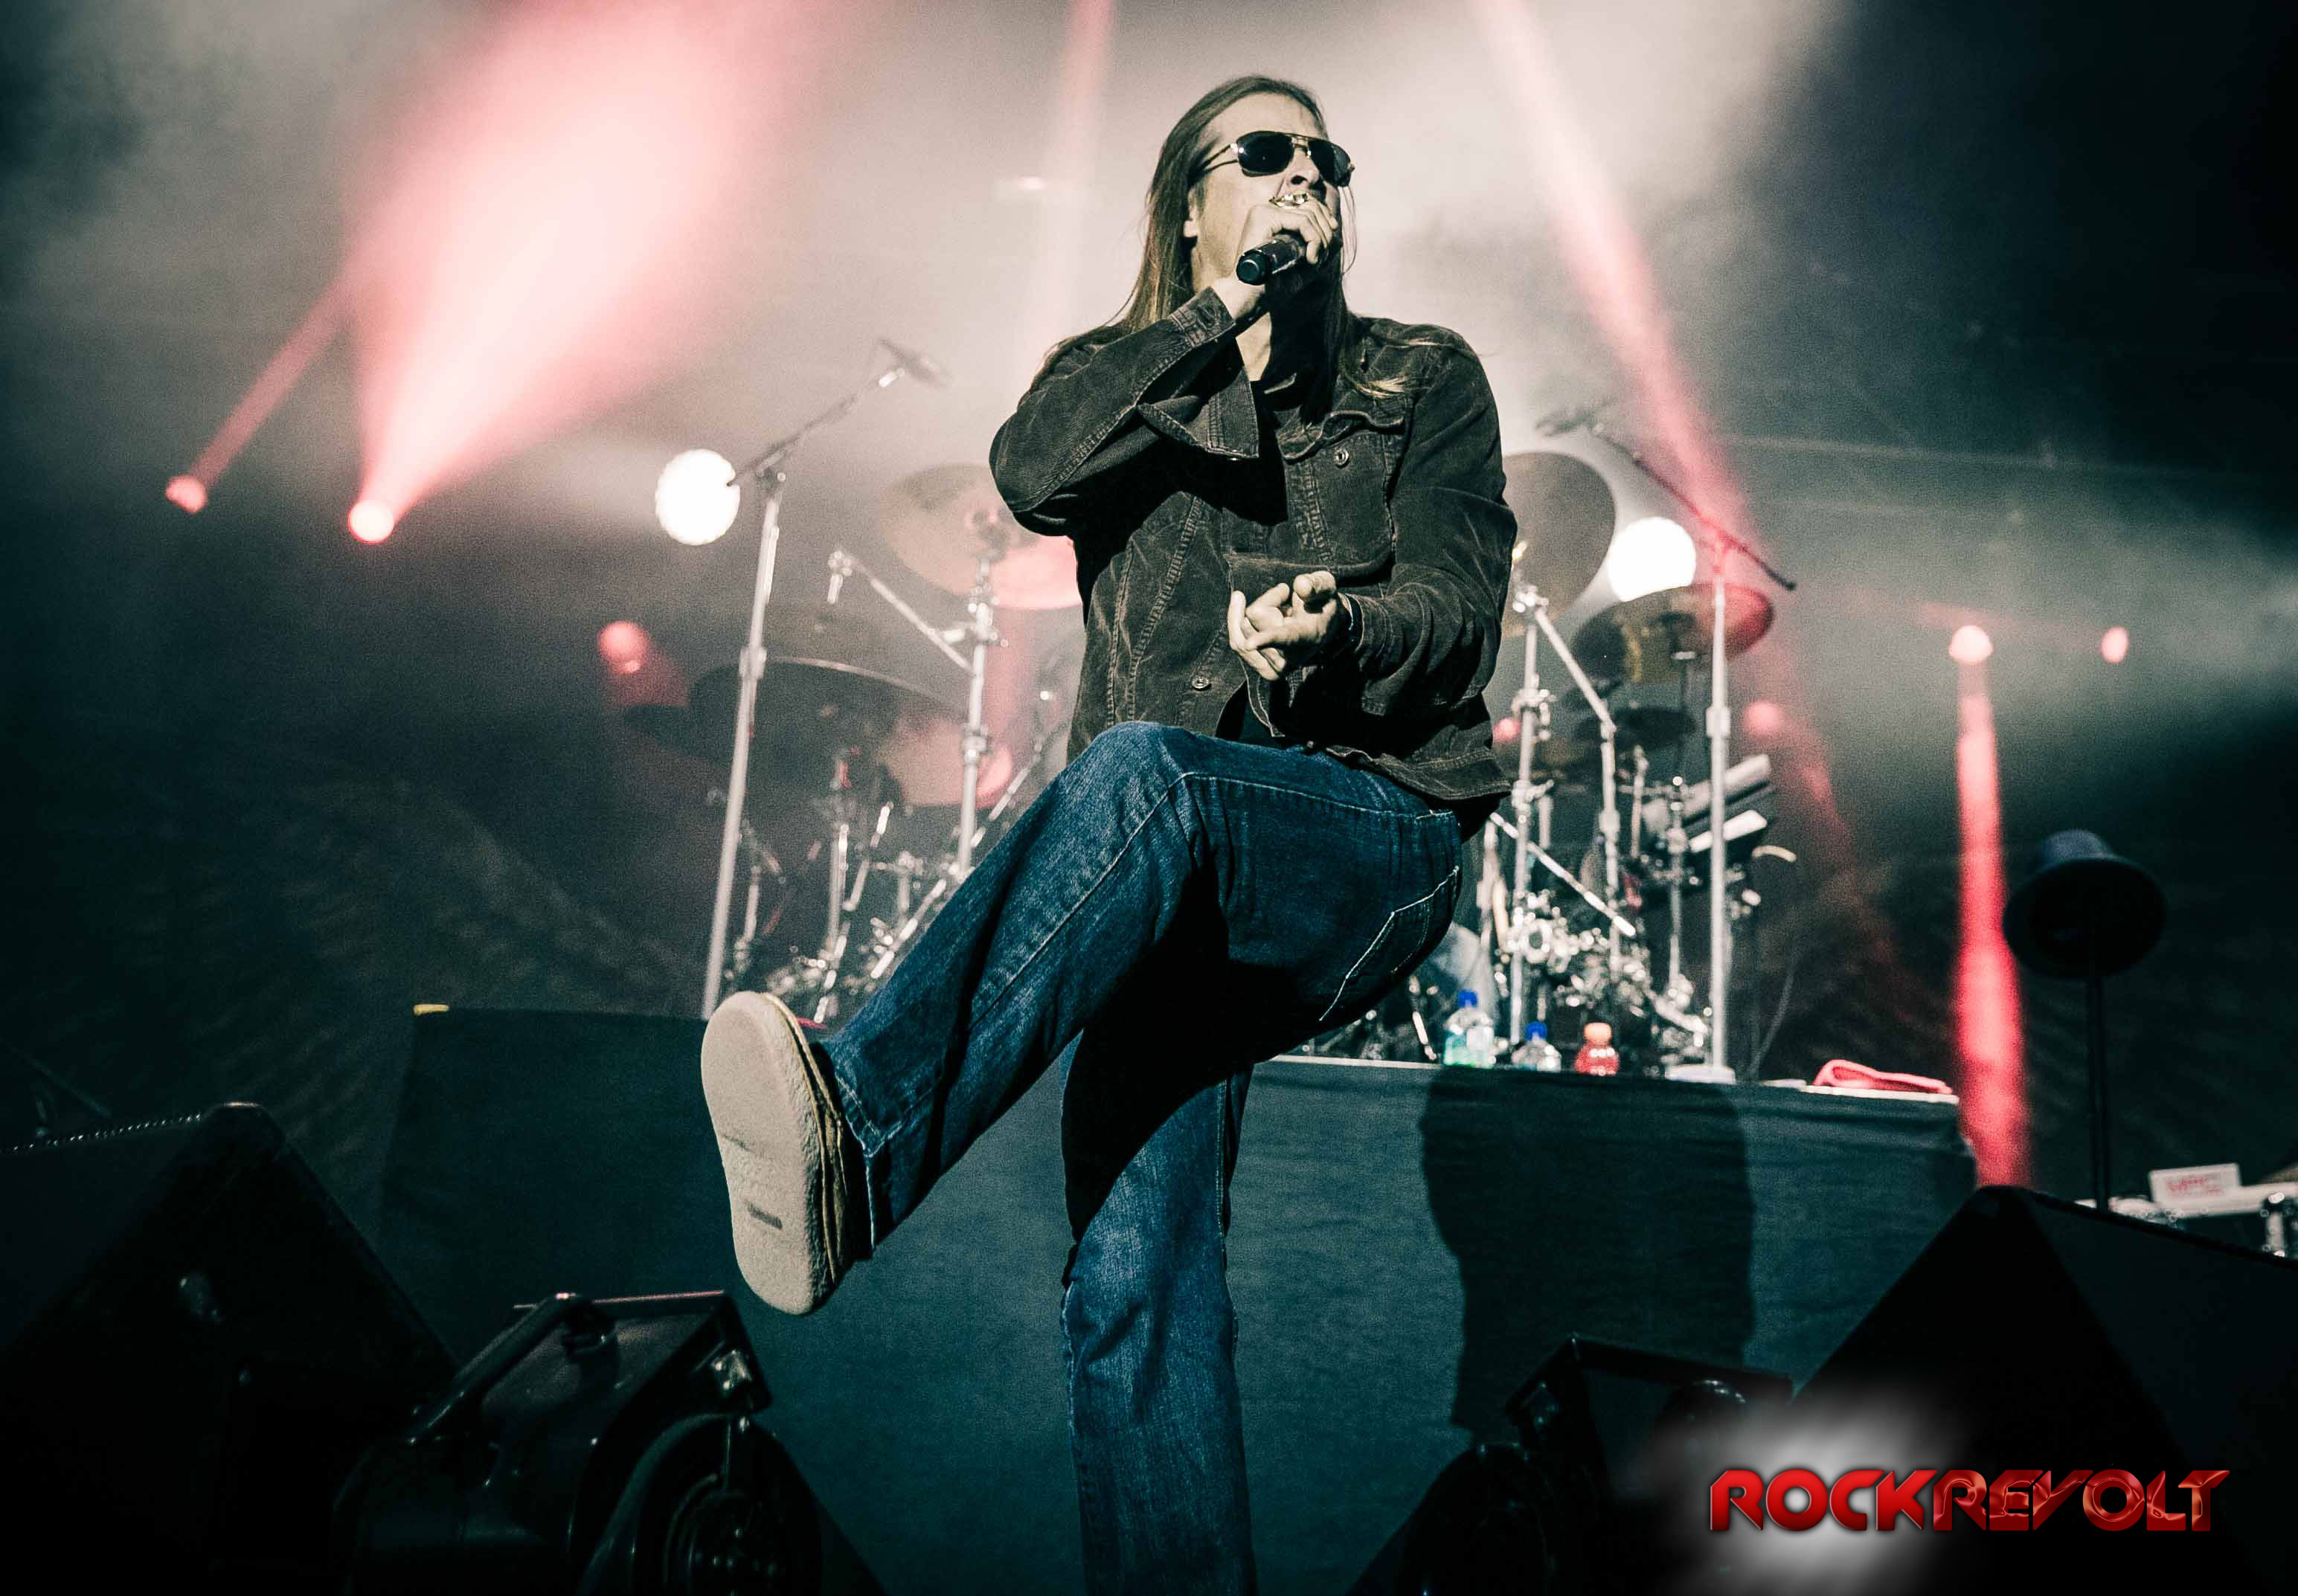 """kid rock fuel and buckcherry essay Buckcherry just wrapped a string of uk dates and will headline north american shows in late december and january before joining kid rock as special guests on the upcoming """"rebel soul"""" tour beginning february 2 in kansas city, mo."""